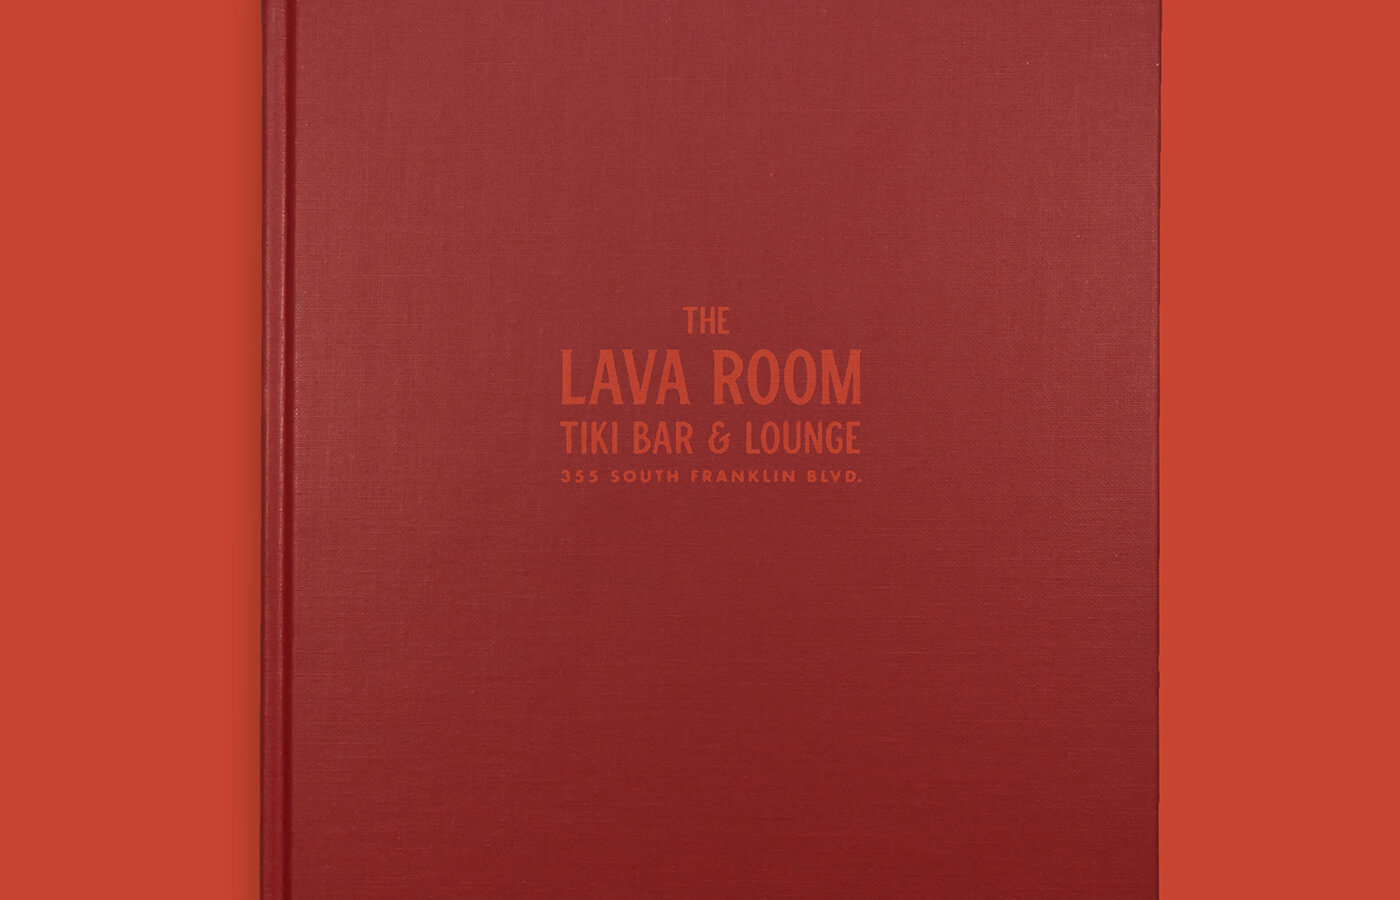 The Lava Room – Tiki Bar & Lounge